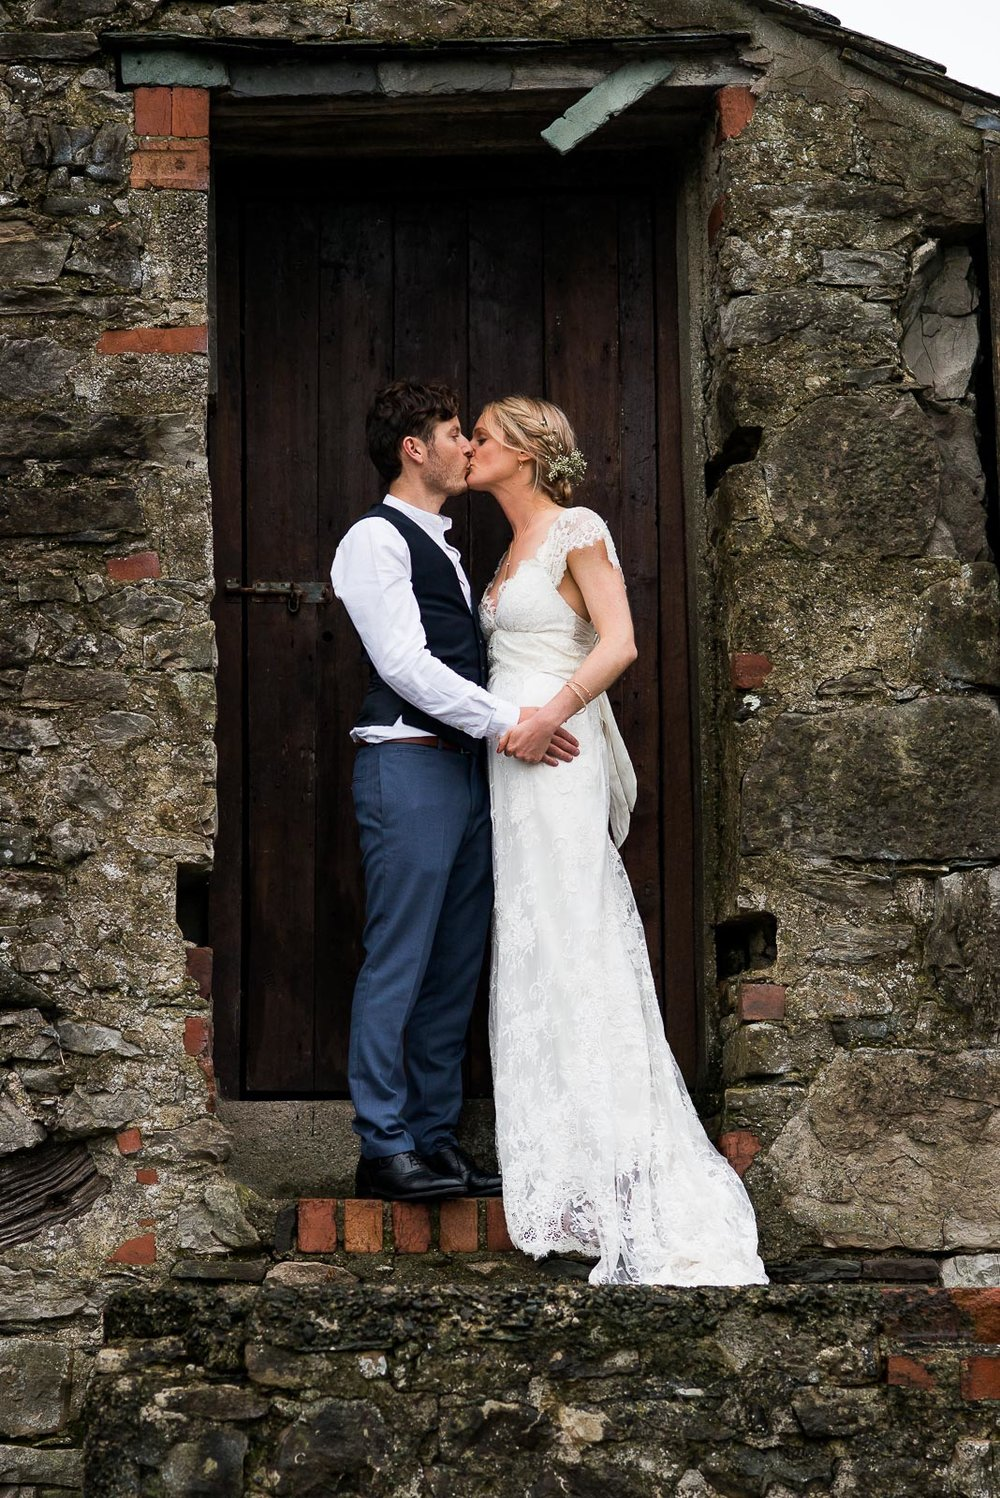 Newley wedded couple embrace in a rustic barn setting © Jessica Grace Photography